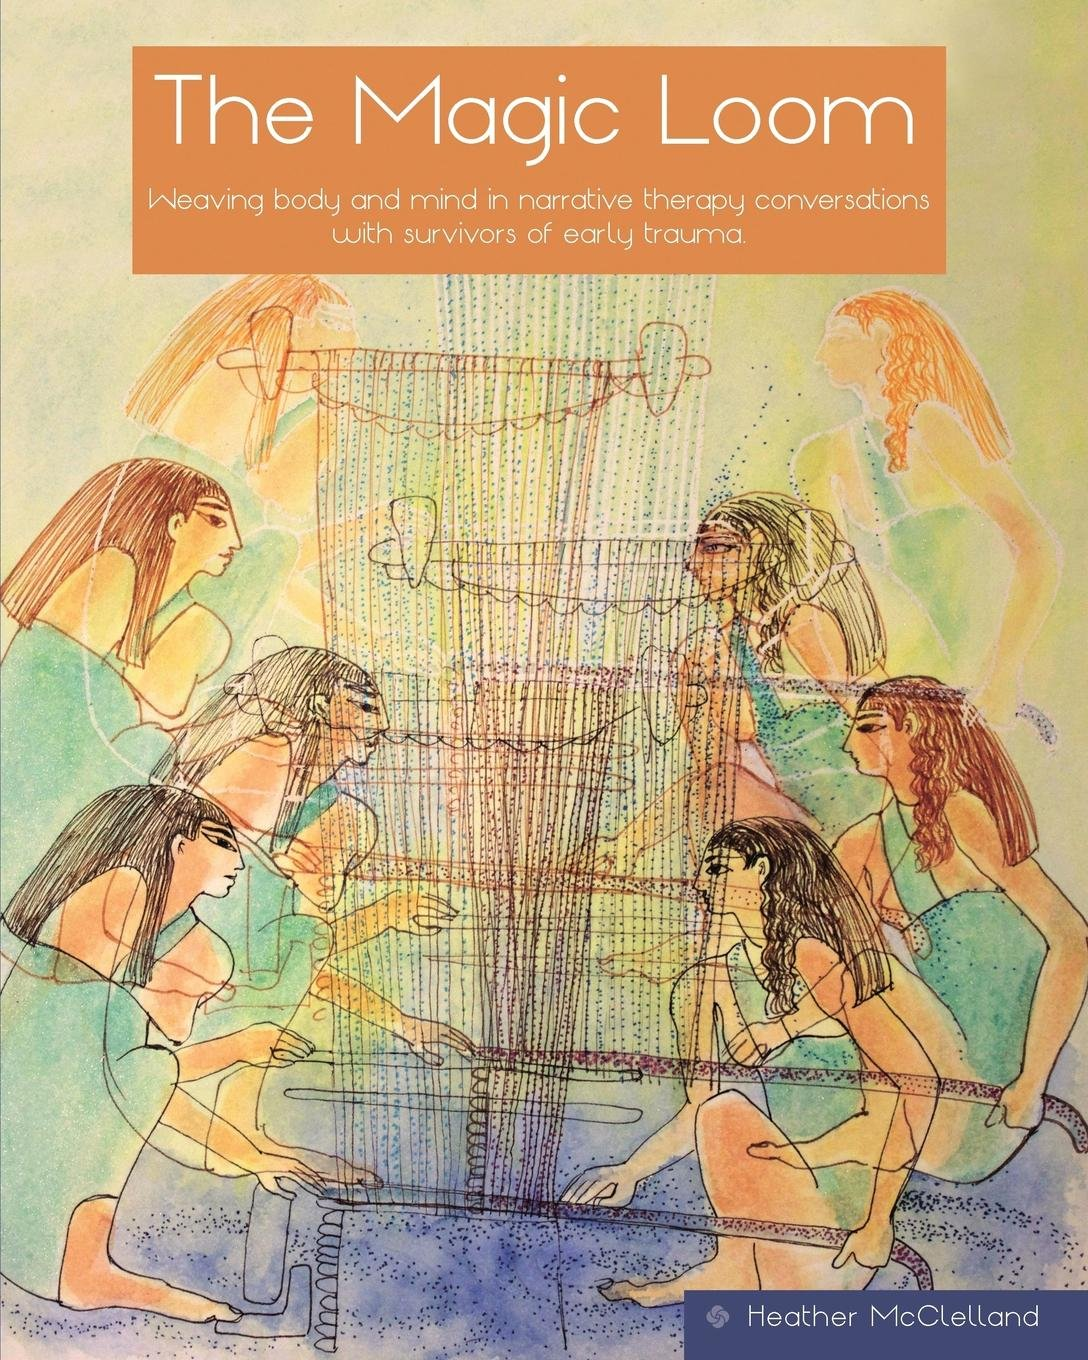 The magic loom weaving body and mind in narrative therapy the magic loom weaving body and mind in narrative therapy conversations with survivors of early trauma heather mcclelland julie obrien tina wilson fandeluxe Choice Image